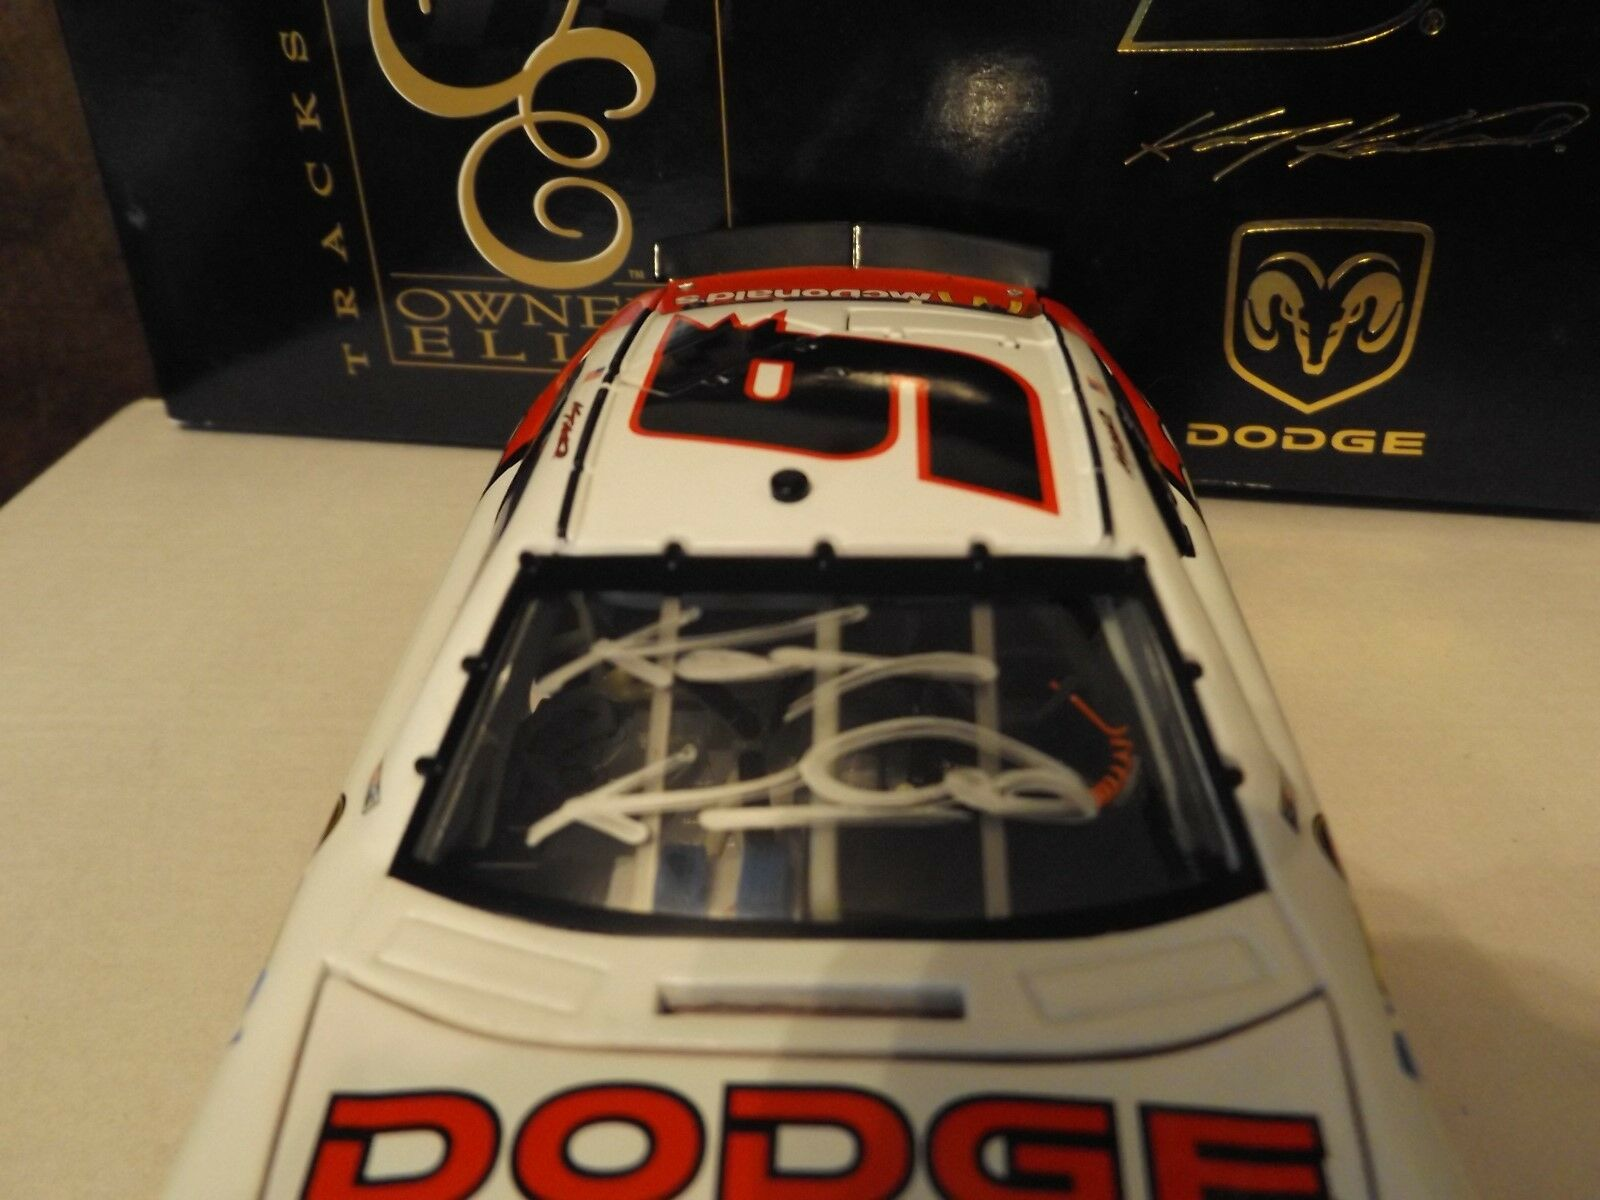 Kasey Kahne Autographed Dodge Dealers 2007 2007 2007 Dodge Charger Owners Elite 1 24 dc9ae0